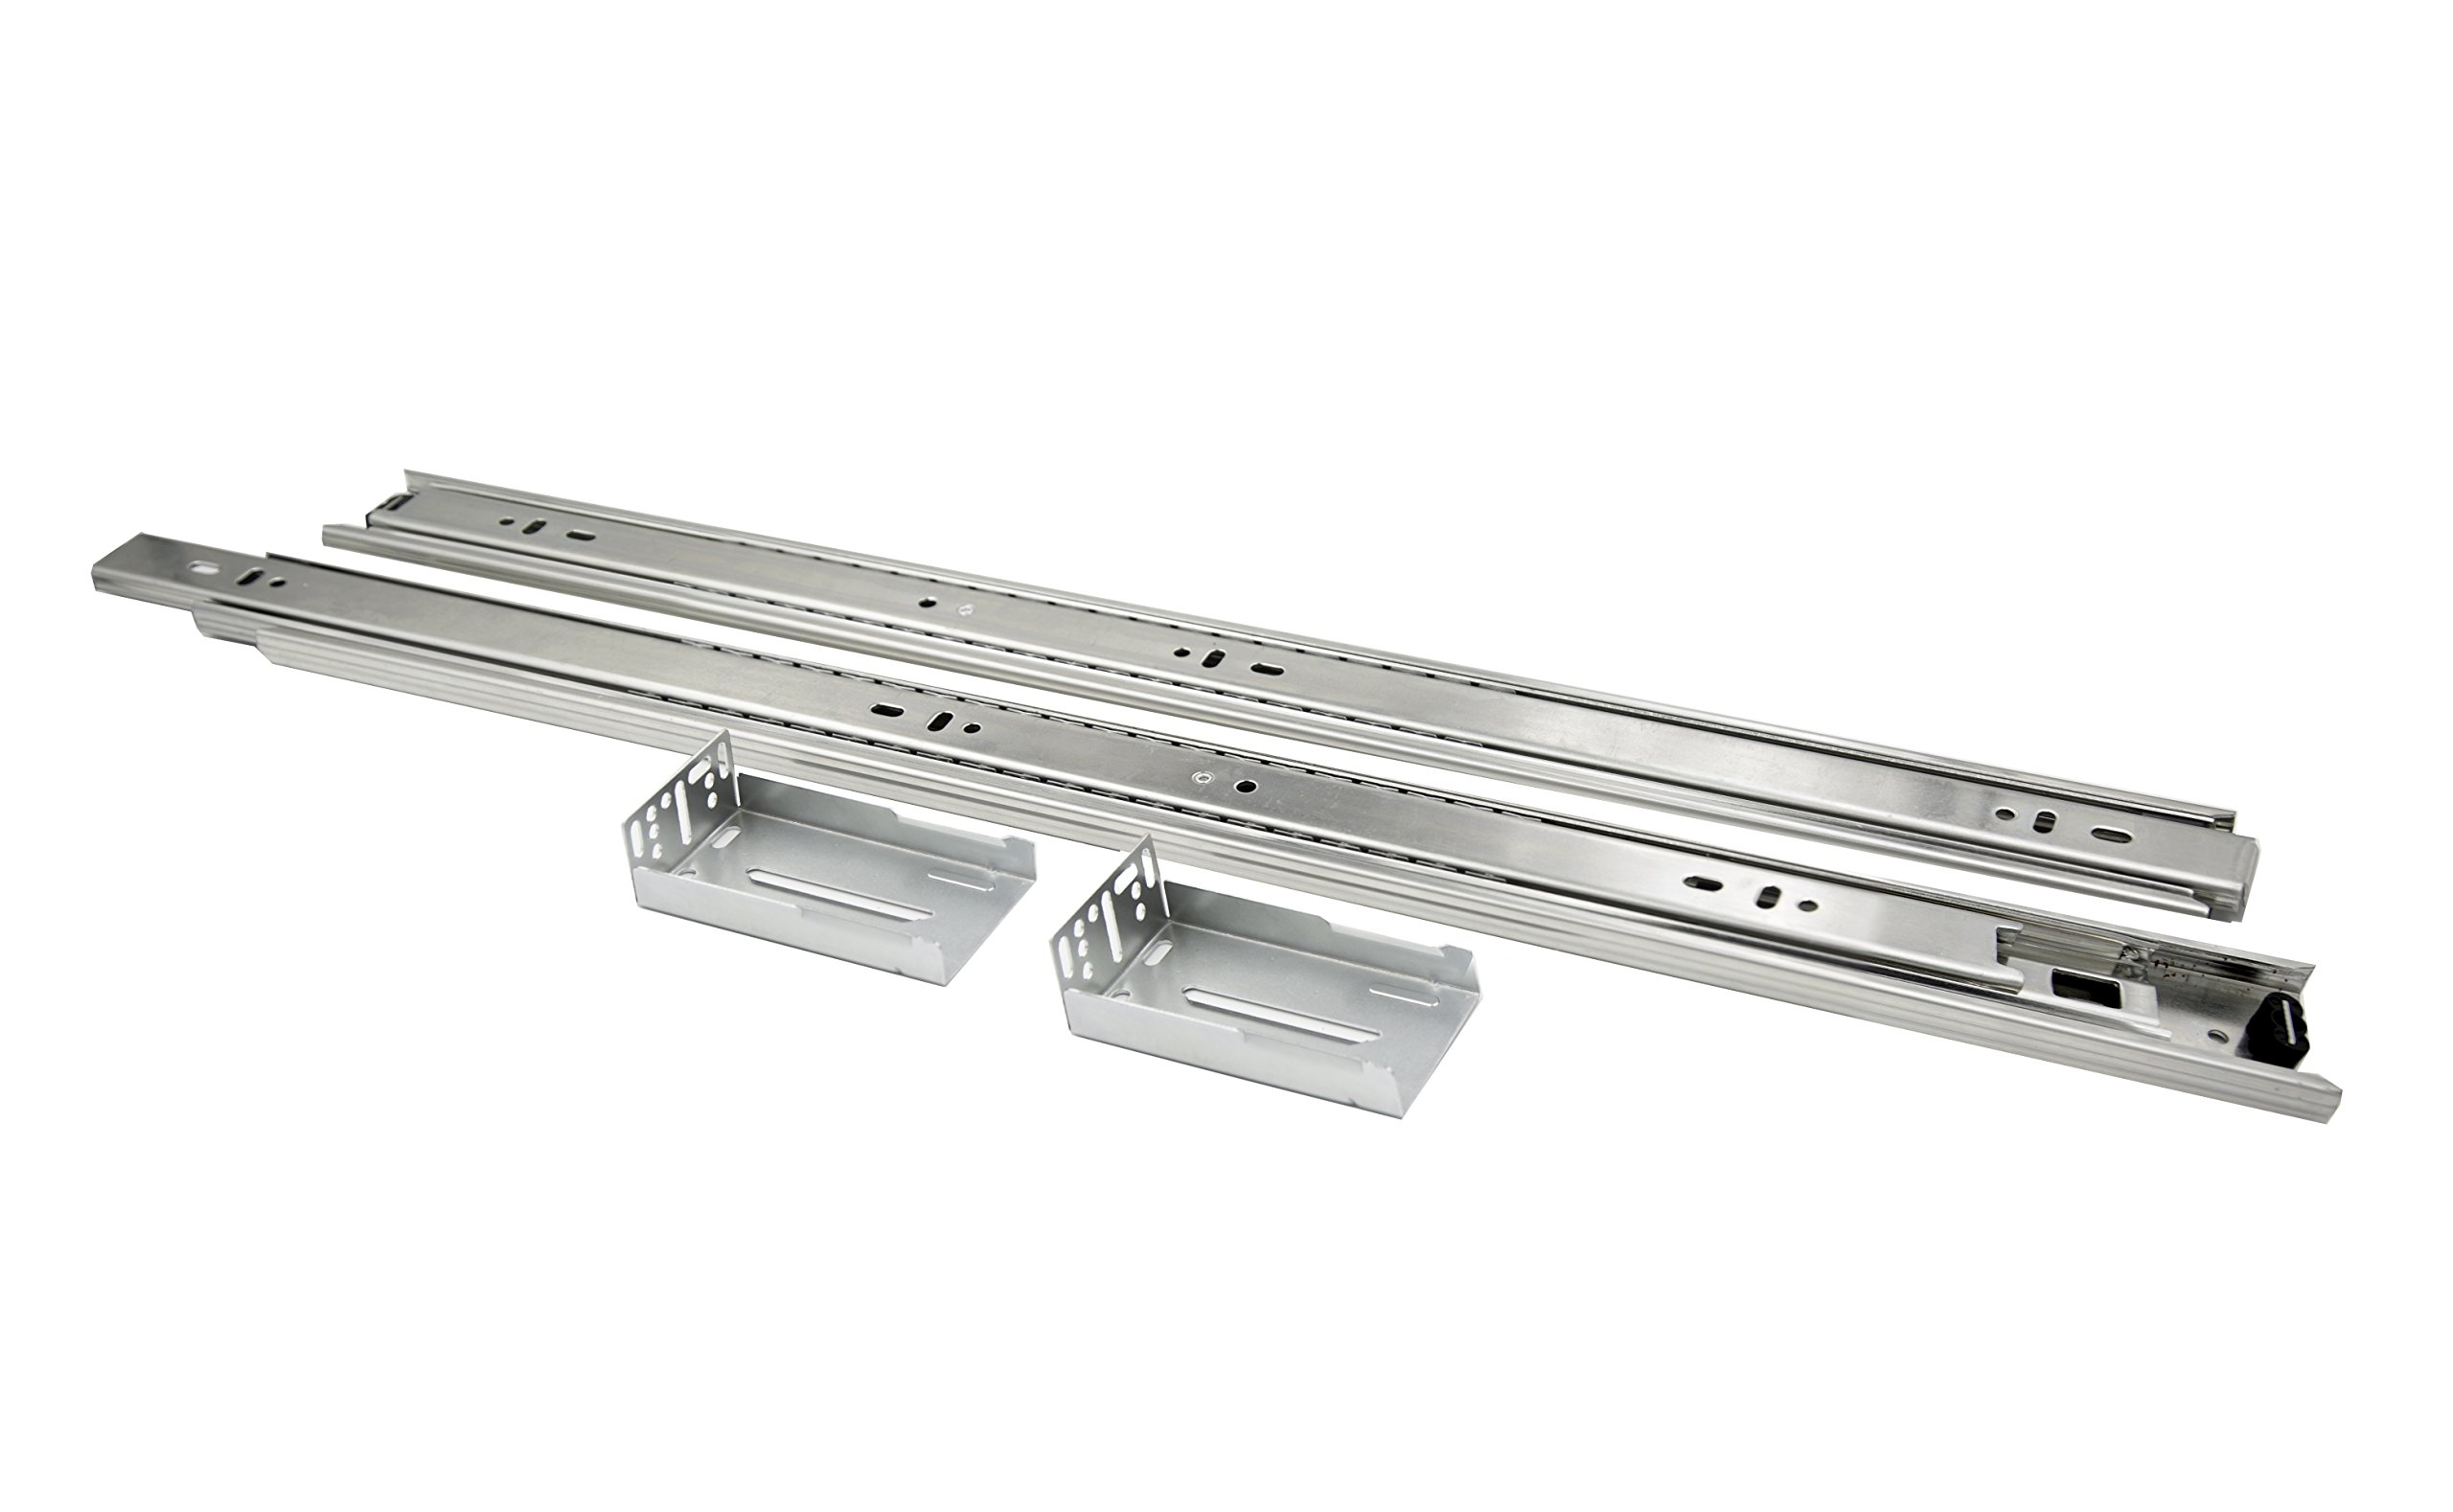 Comet Pro Hardware S5 16 Inch Full Extension Ball Bearing Slides 100 LB Capacity For Kitchen Cabinet Drawer . Rear Mount Brackets and Screws are Included (16 Inch 1 Pair) by Comet Pro Hardware